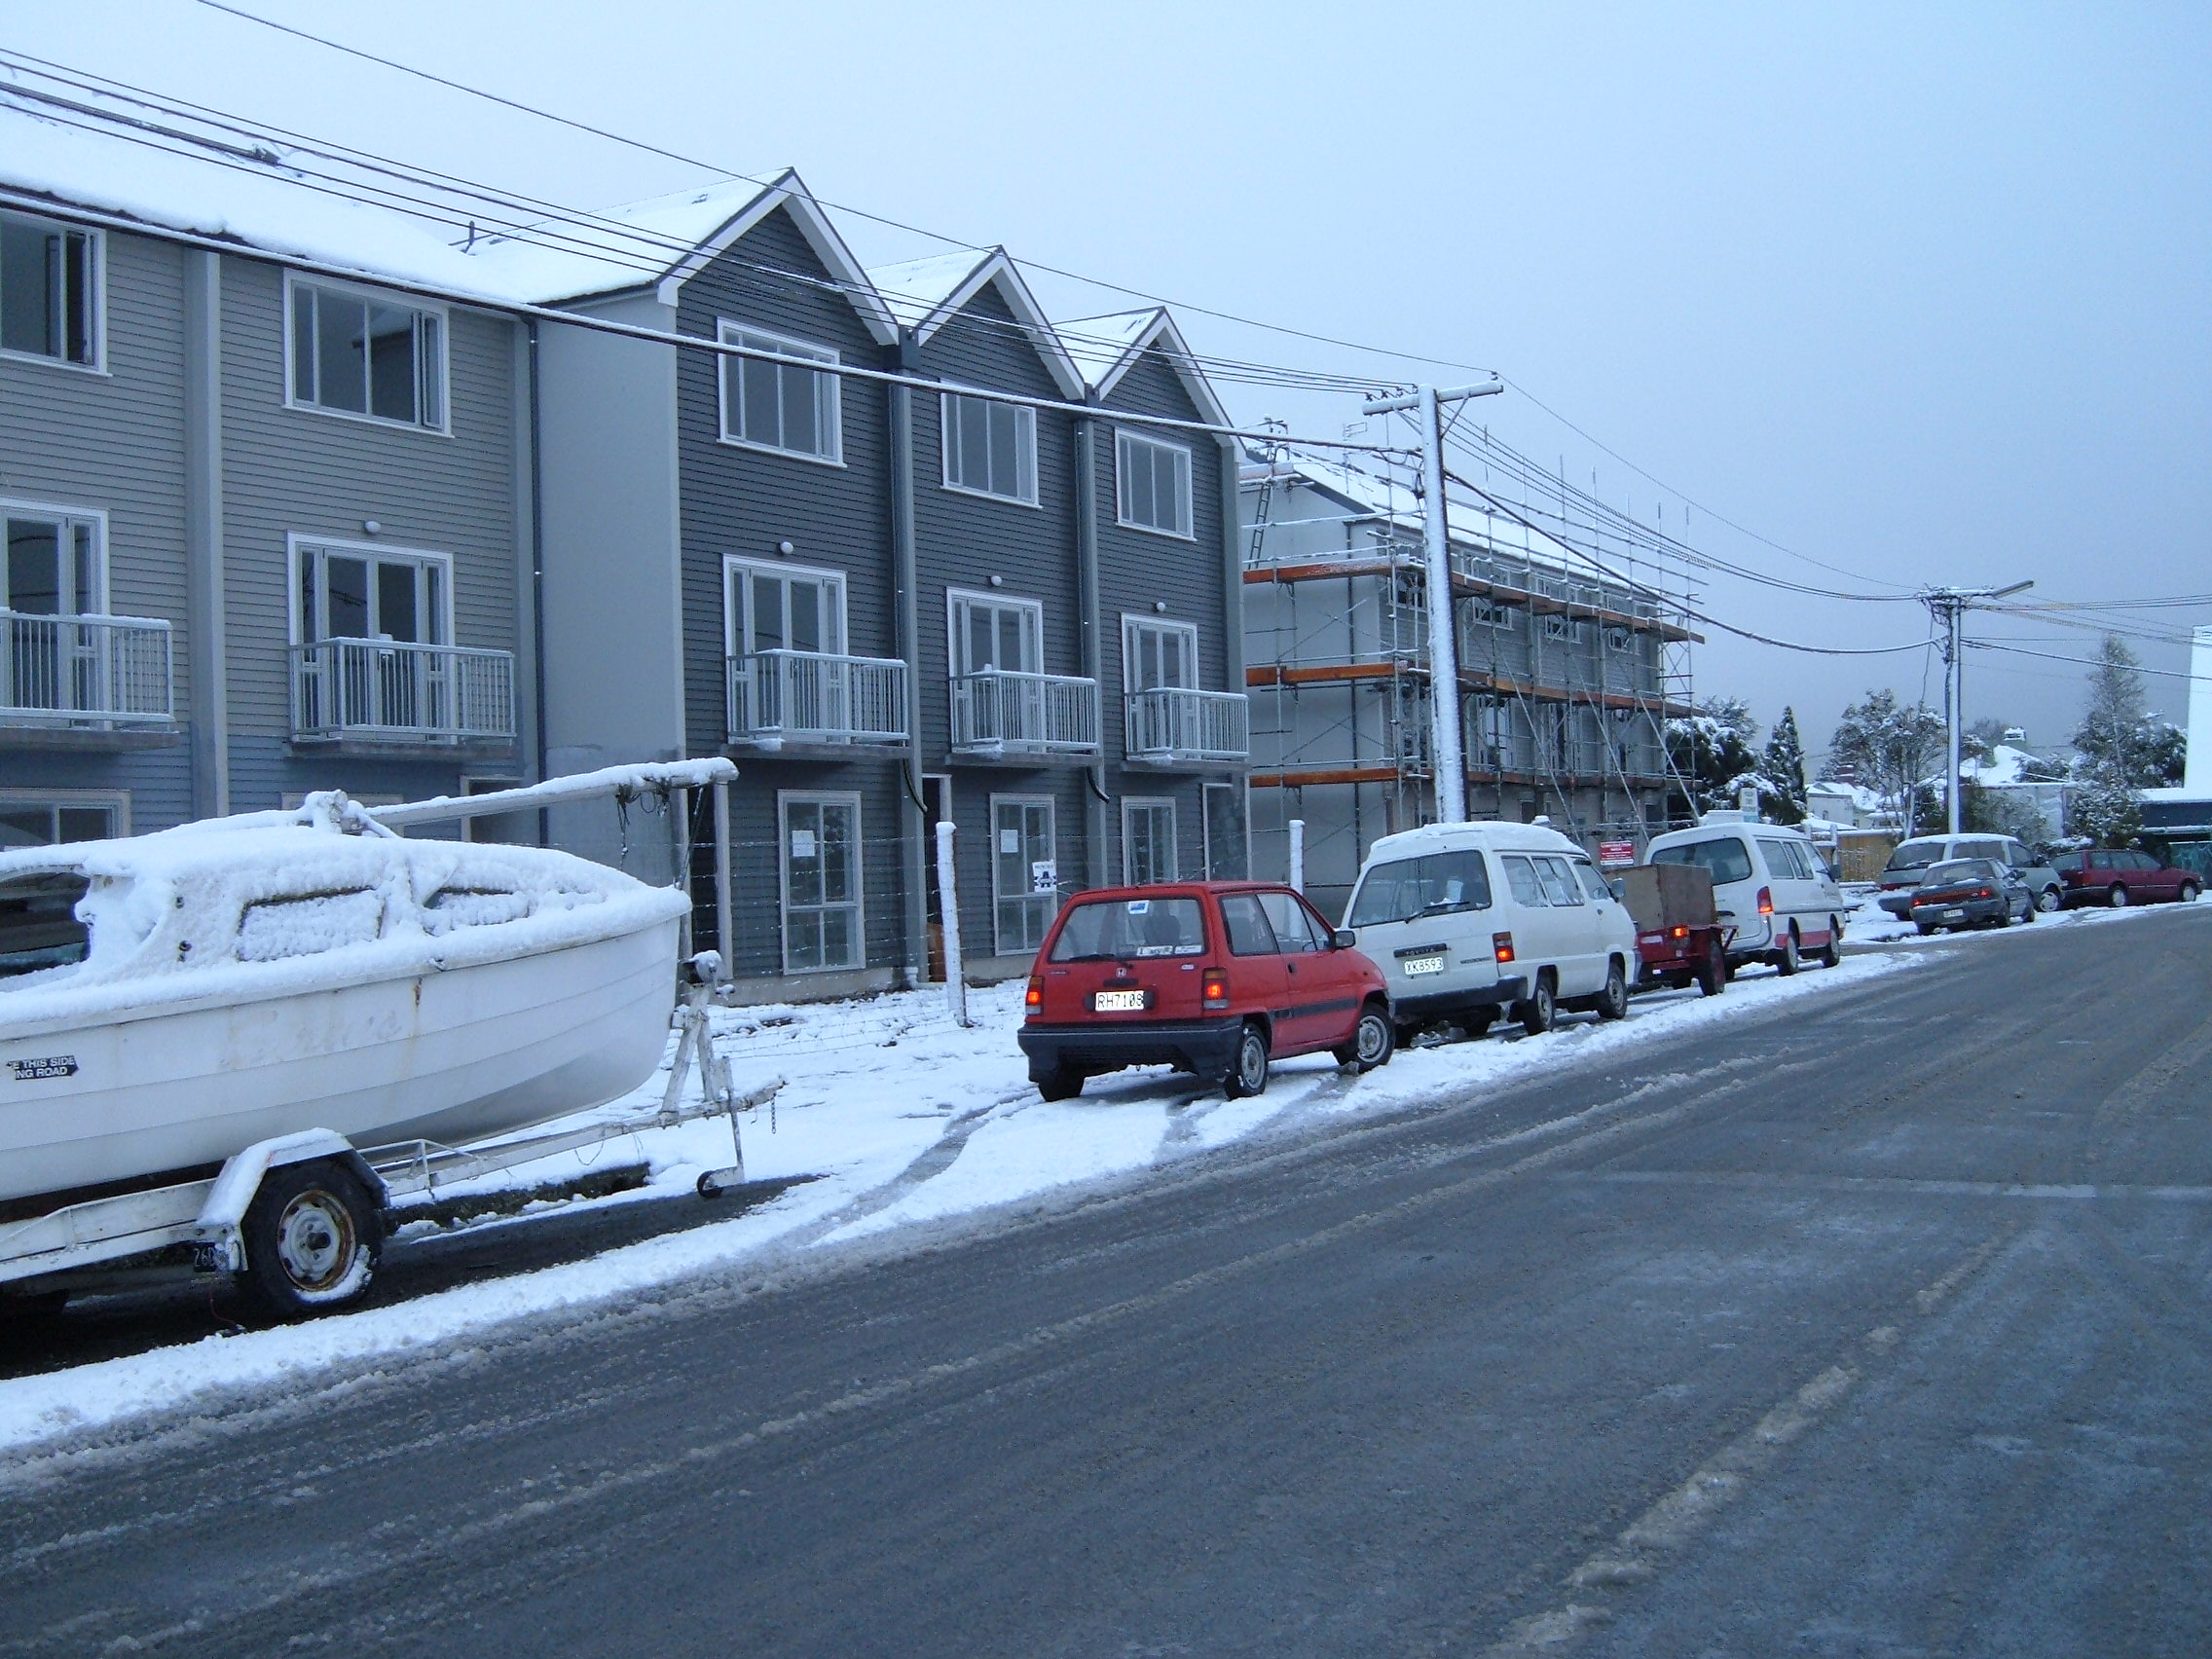 Our team working on the Poulson St 3 Story Units in the snow in Christchurch